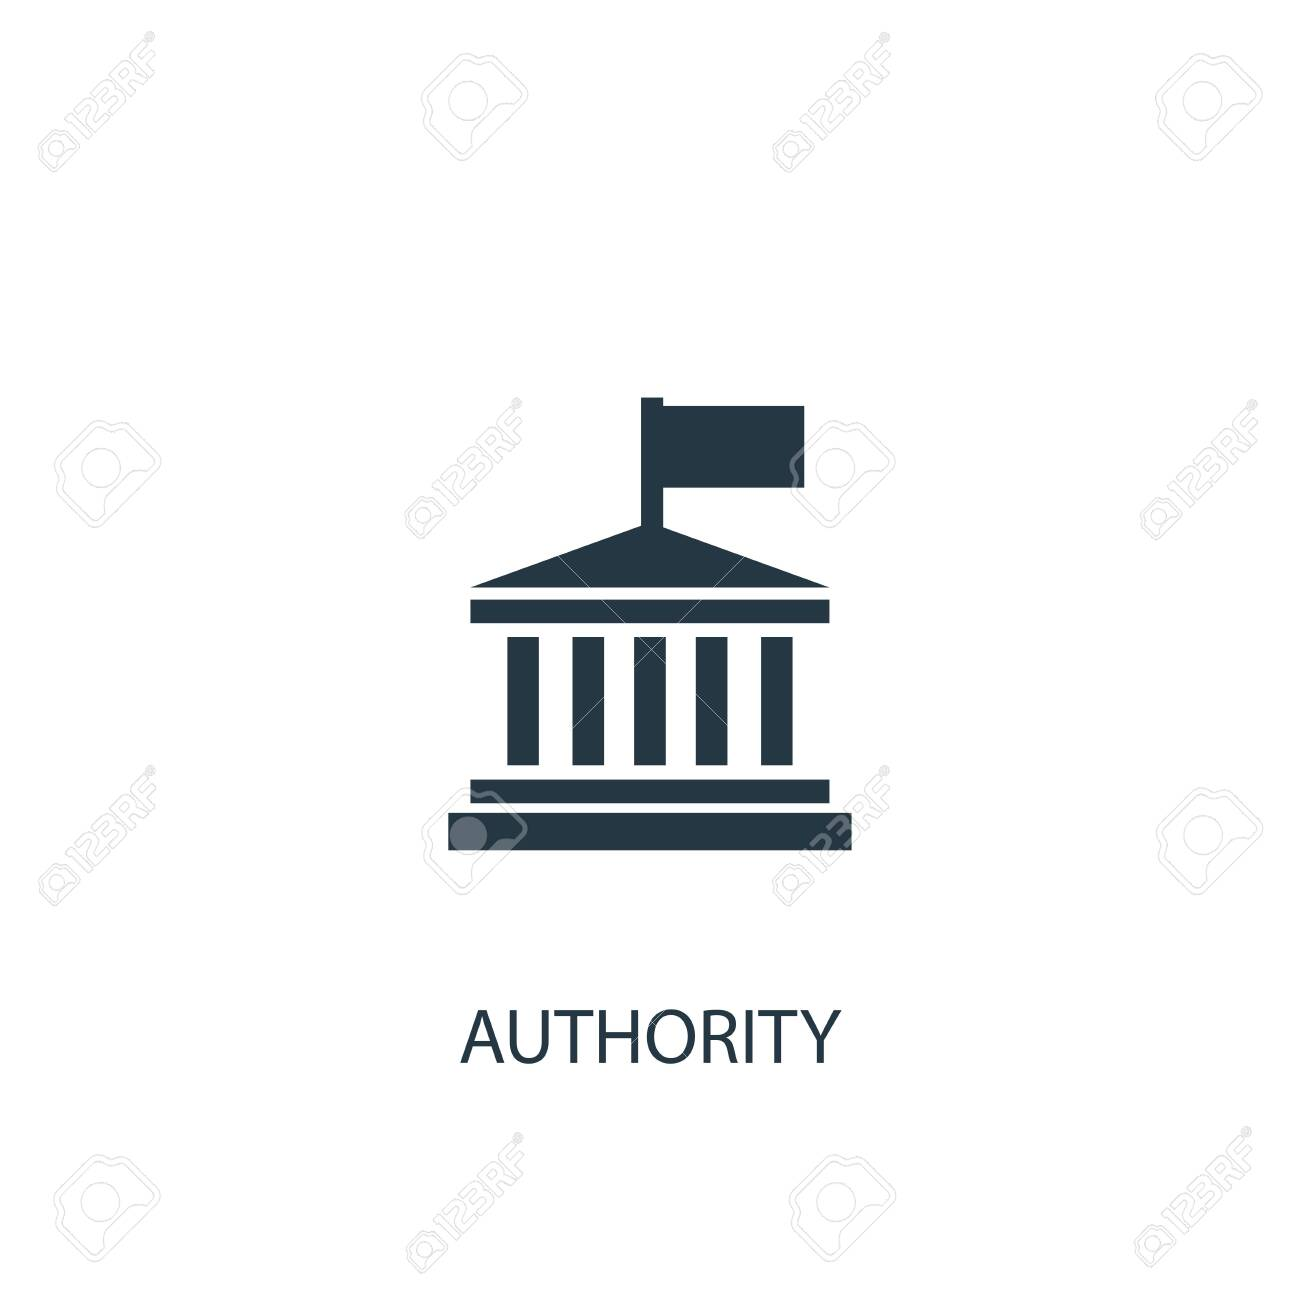 authority icon. Simple element illustration. authority concept symbol design. Can be used for web - 130224015